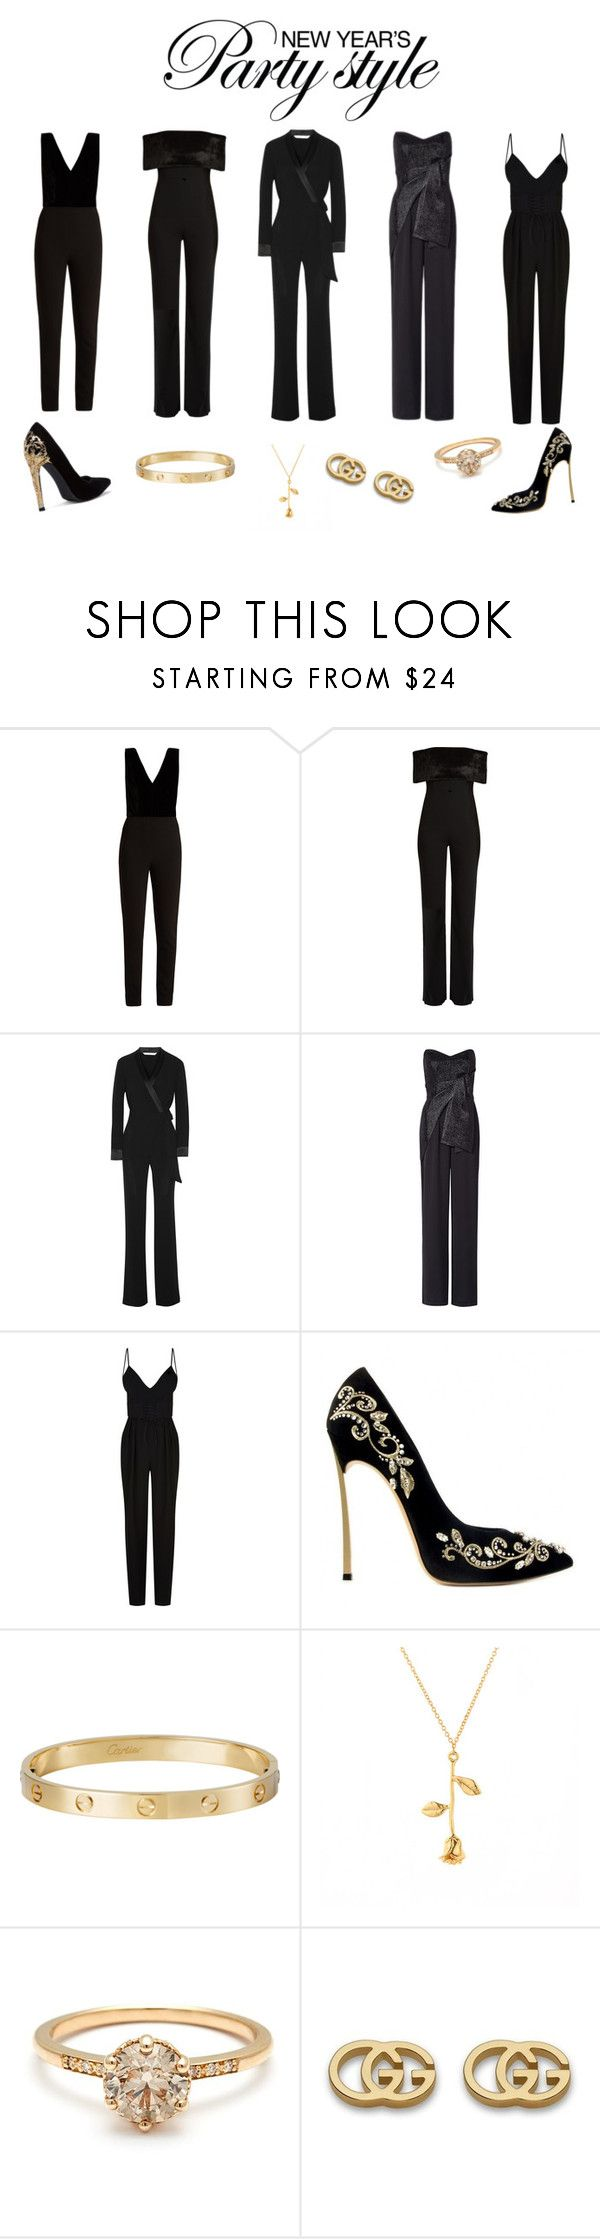 """New years outfit inspo"" by idahedbom on Polyvore featuring Elie Saab, Galvan, Diane Von Furstenberg, IDRA, Nicholas, Cartier and Gucci"